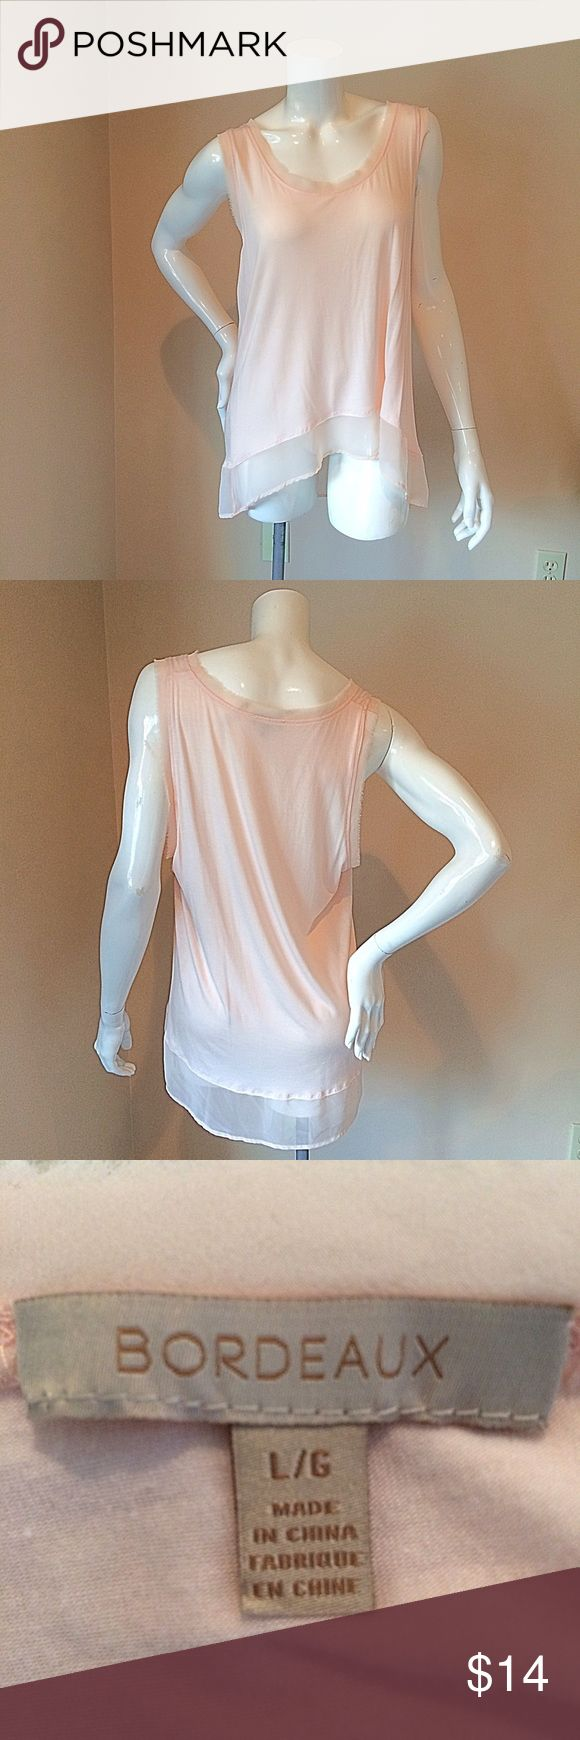 Bodeaux Anthropologie  L peach jersey flounce tank Bordeaux Anthro size large peach jersey flounce tank. Bust 20 inches, length 27 inches. 94% rayon 6% spandex. Wear this a skinny jeans and heels for a super sweet relaxed look. Anthropologie Tops Tank Tops